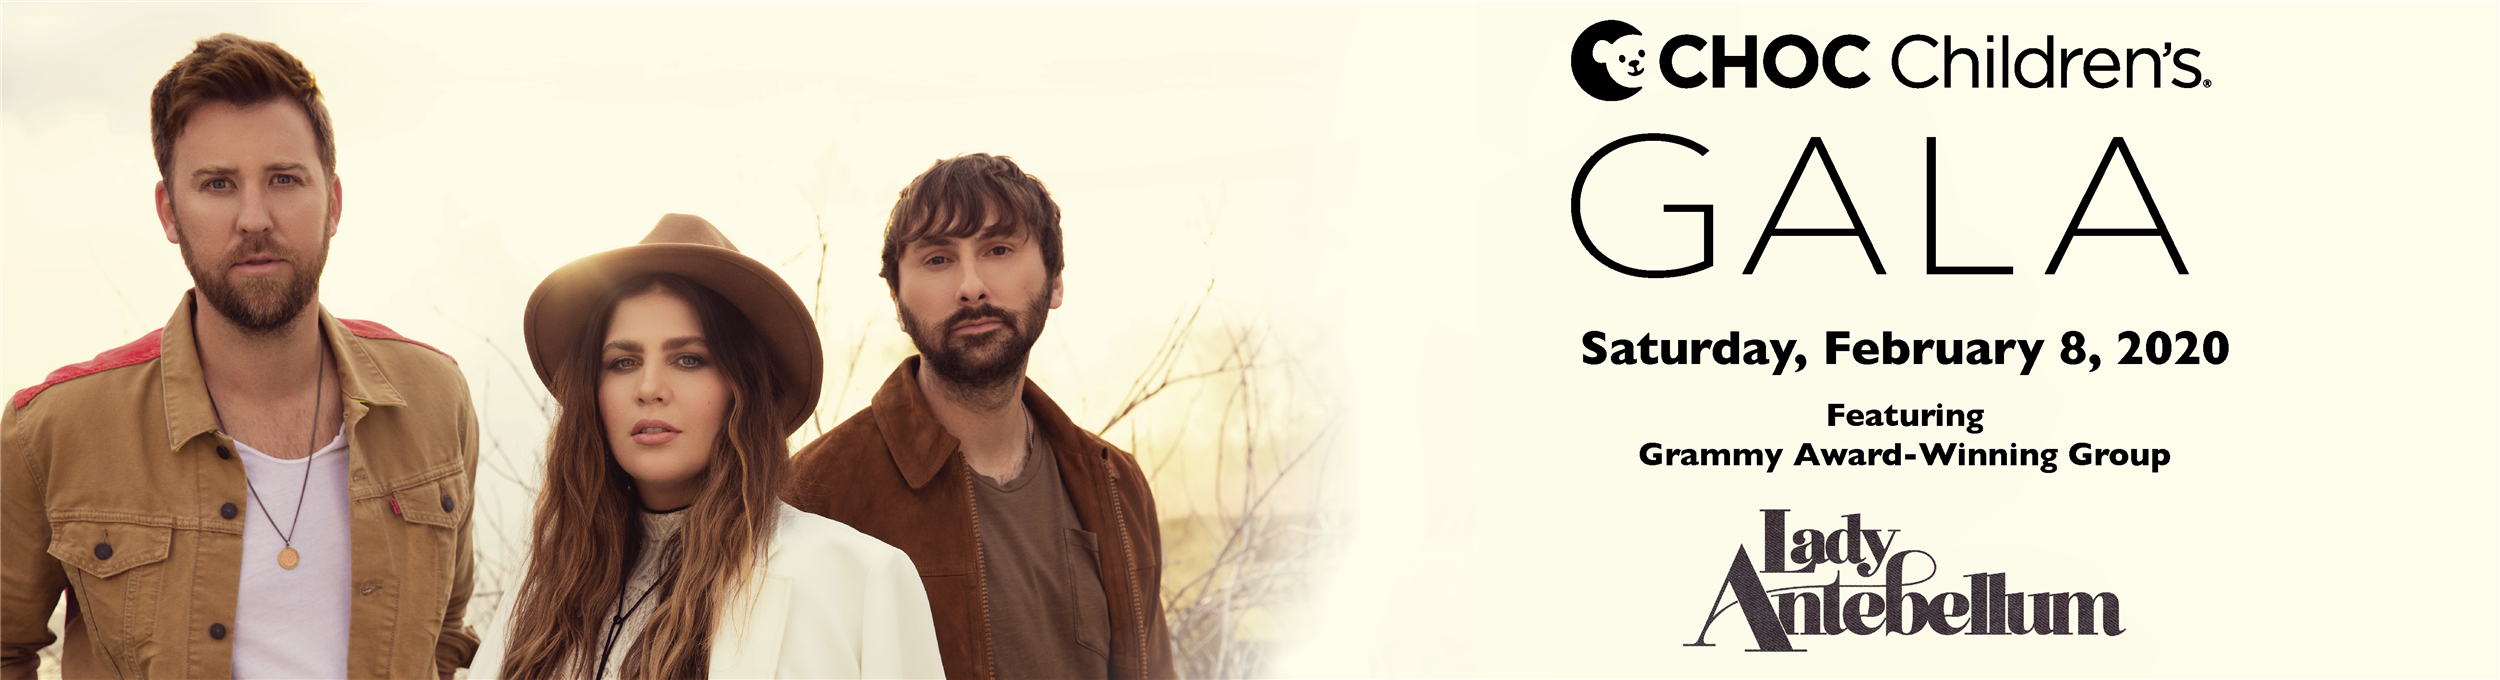 Post_Lady_Antebellum_Banner-01.png